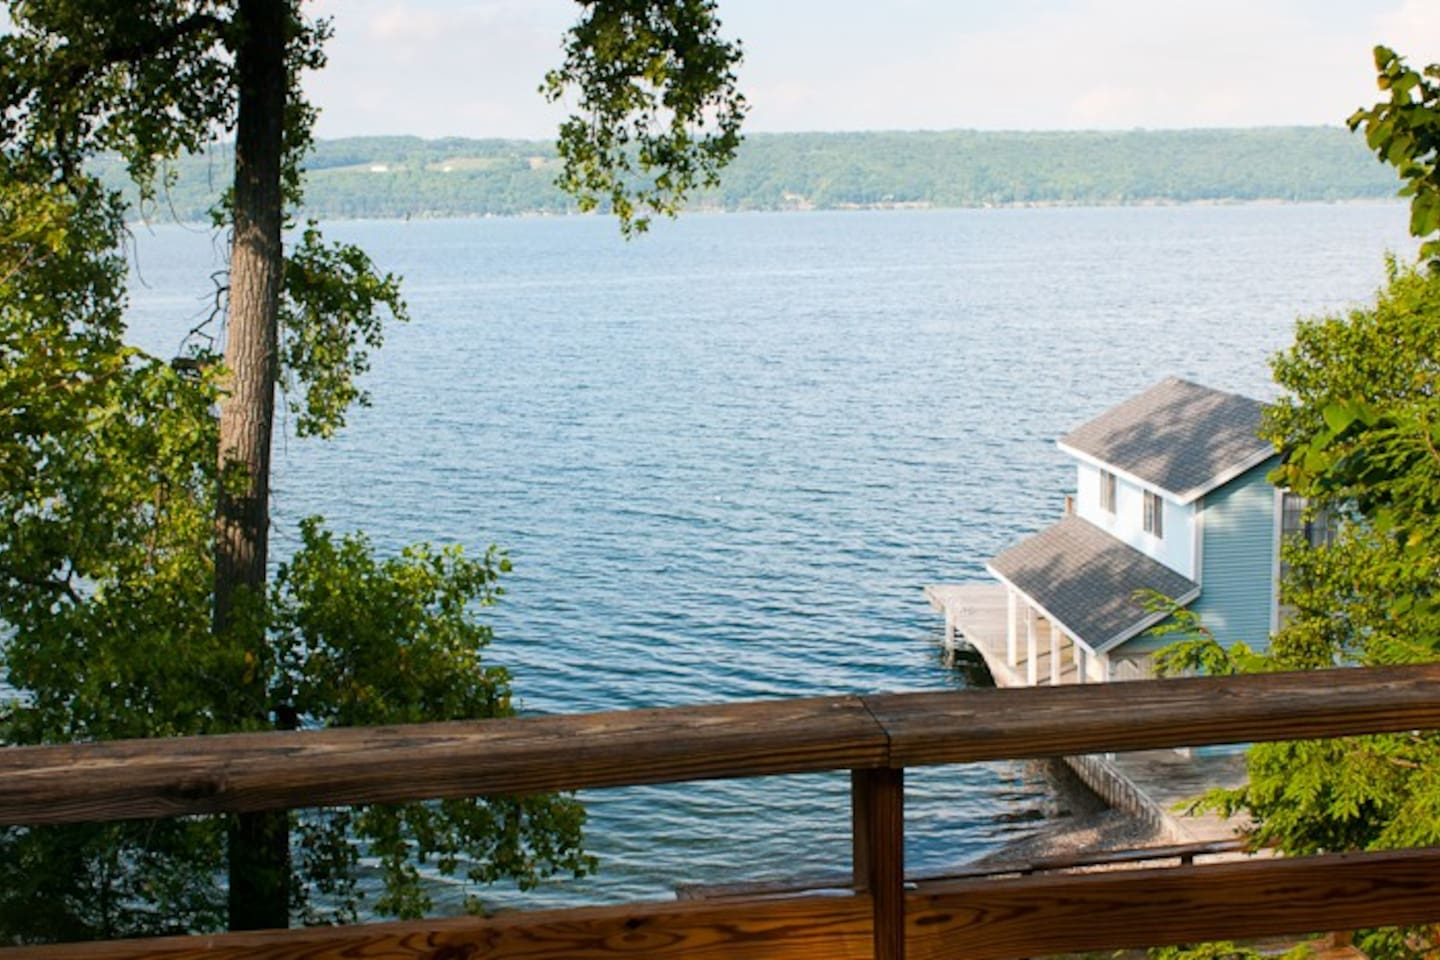 Secluded 120 ft private beach - Houses for Rent in Trumansburg, New ...